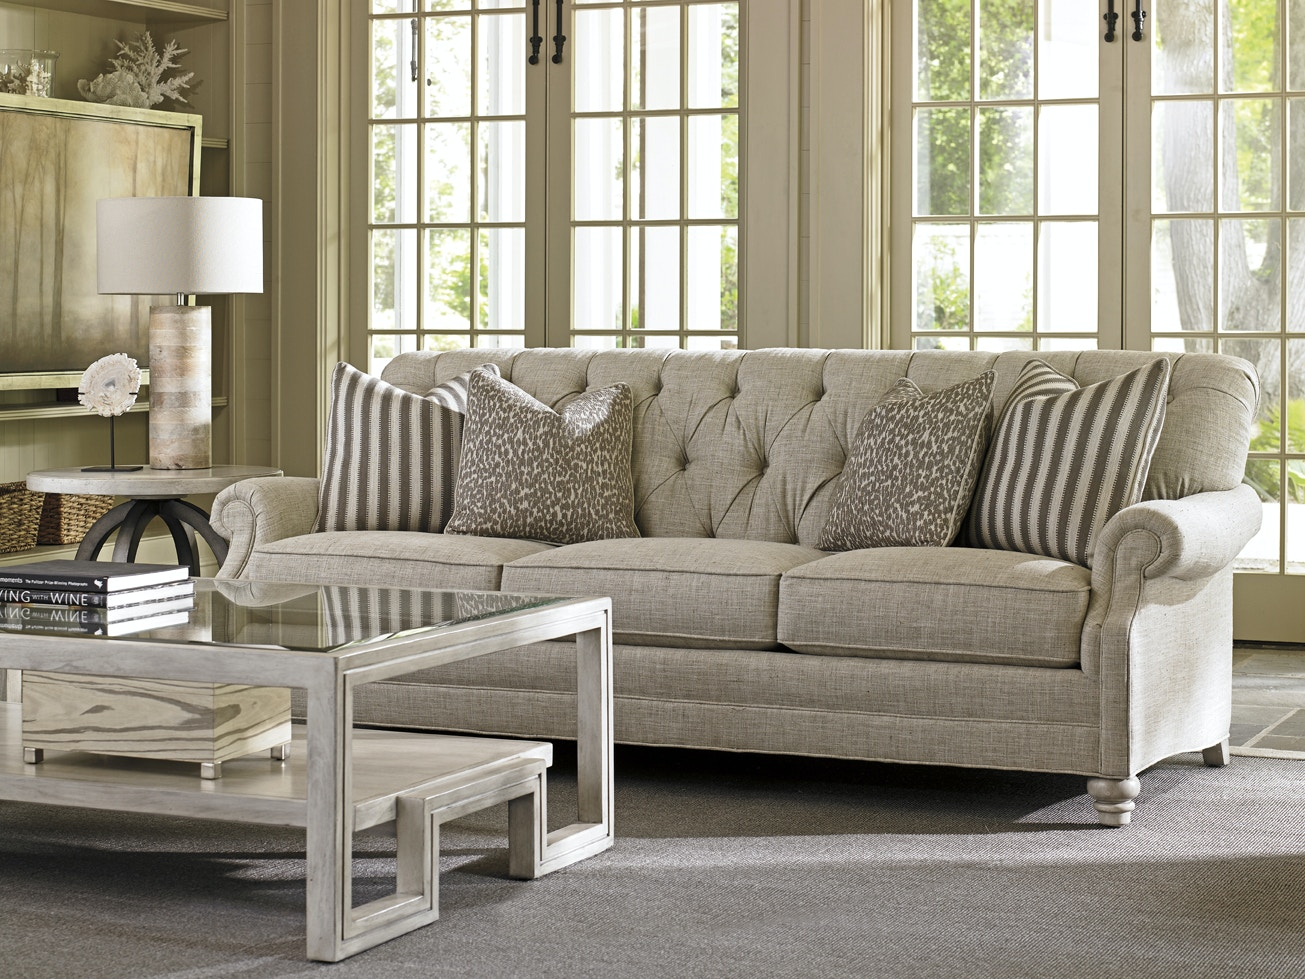 Lexington furniture living room oyster bay greenport sofa for Lexington furniture